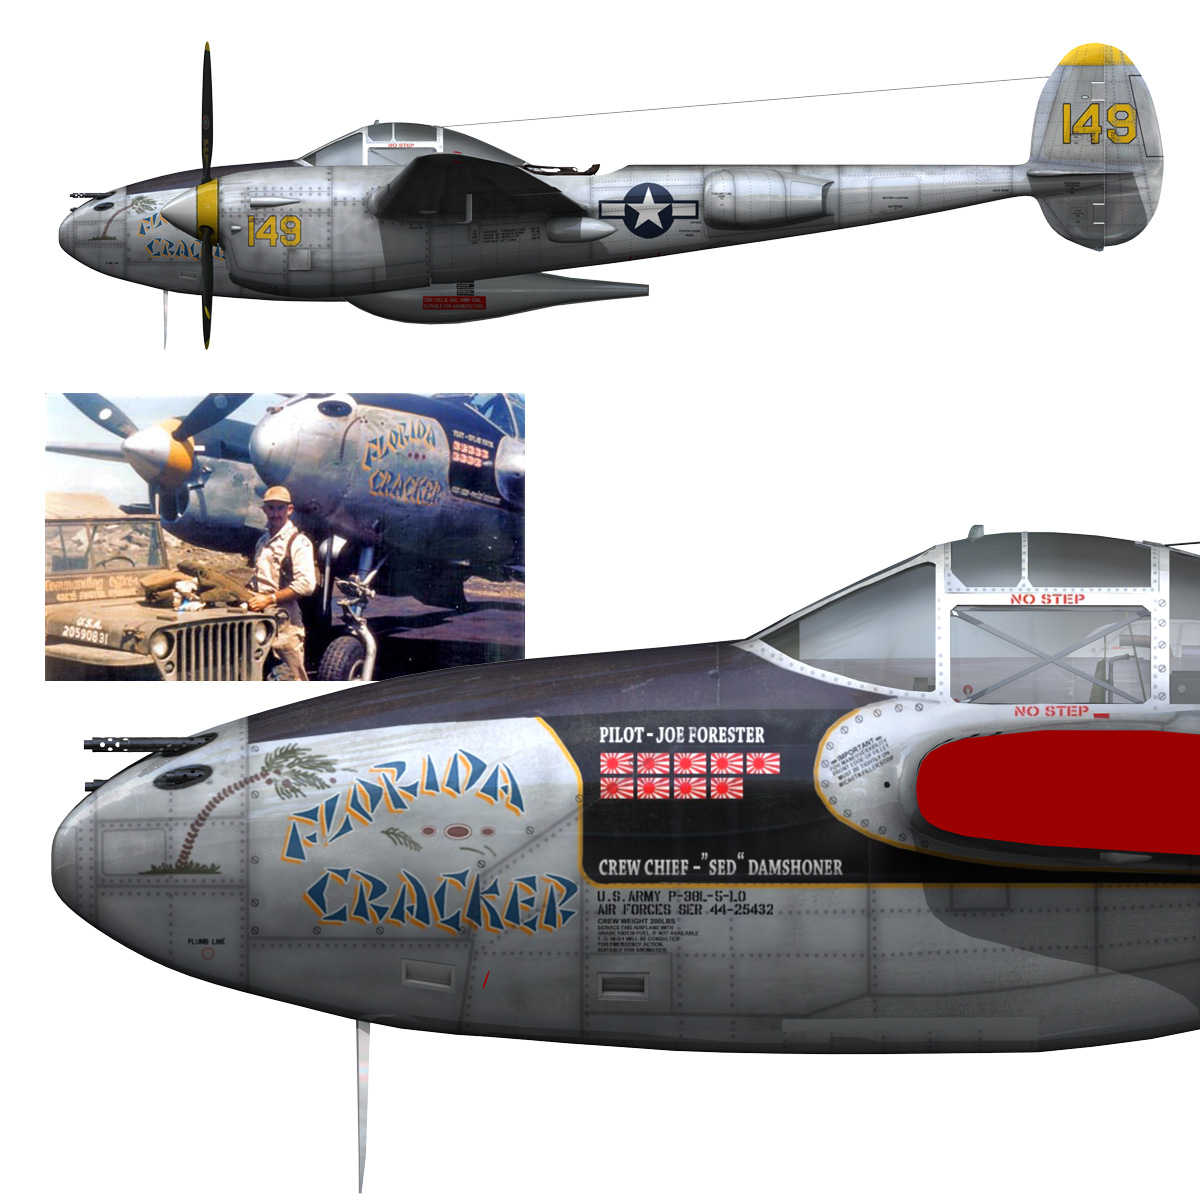 lockheed p-38 lightning – florida cracker 3d model fbx c4d lwo obj 279431